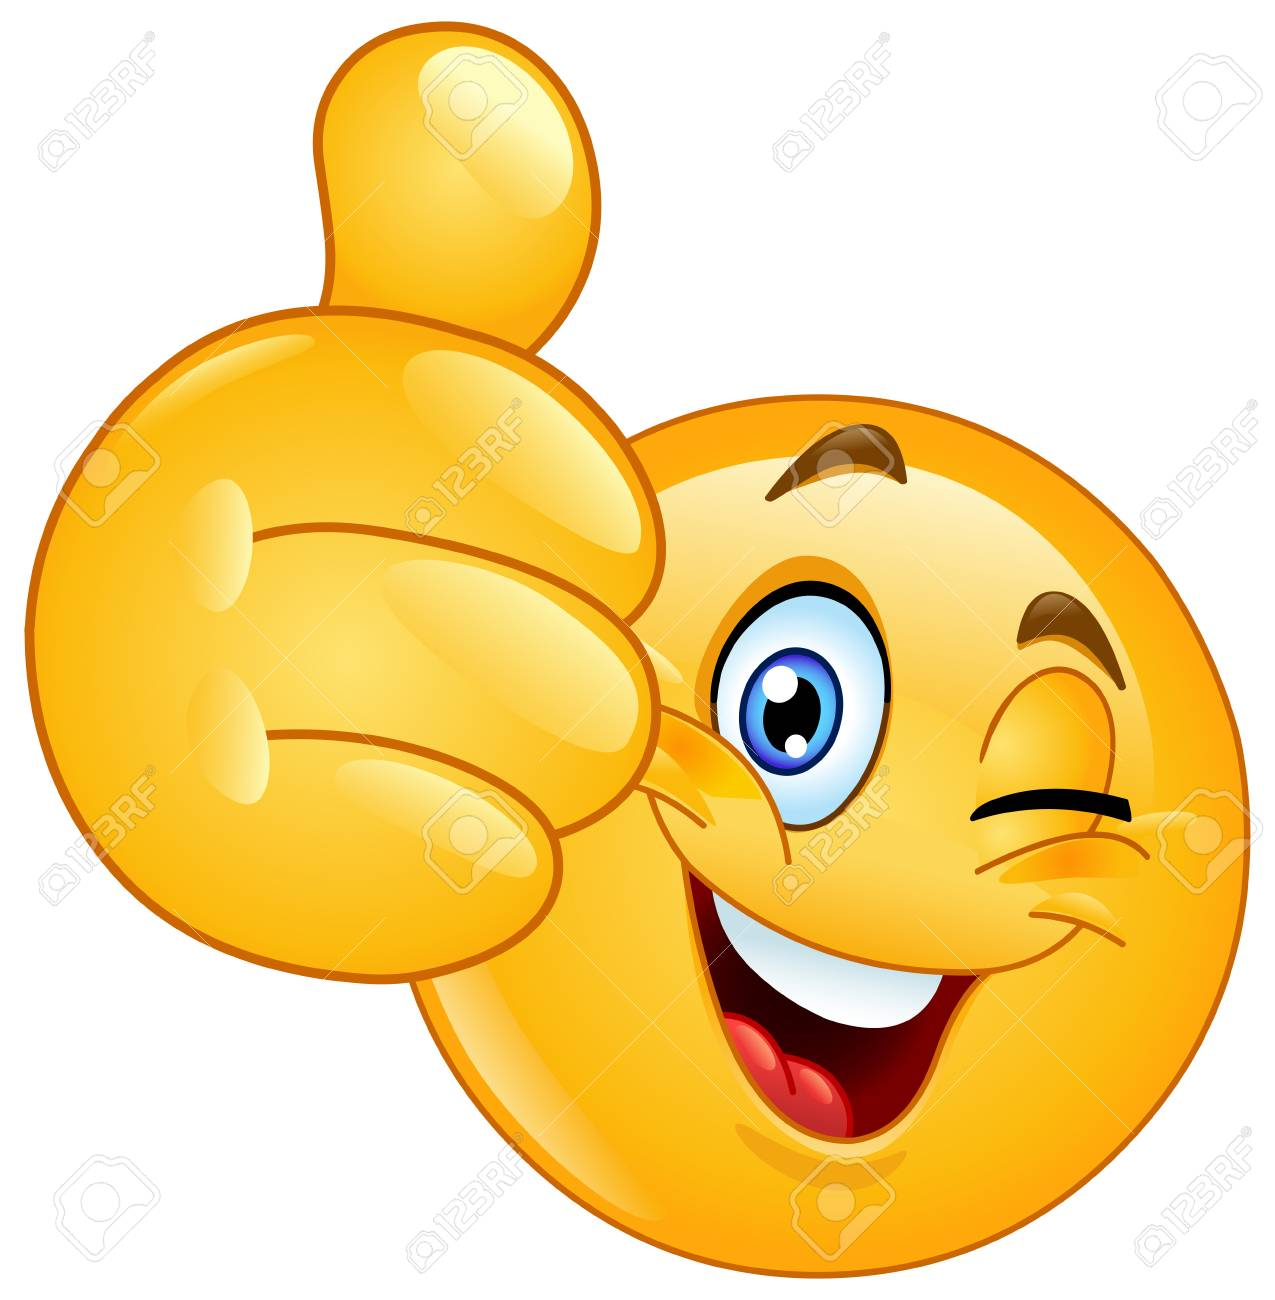 Emoticon winking and showing thumb up - 106275794